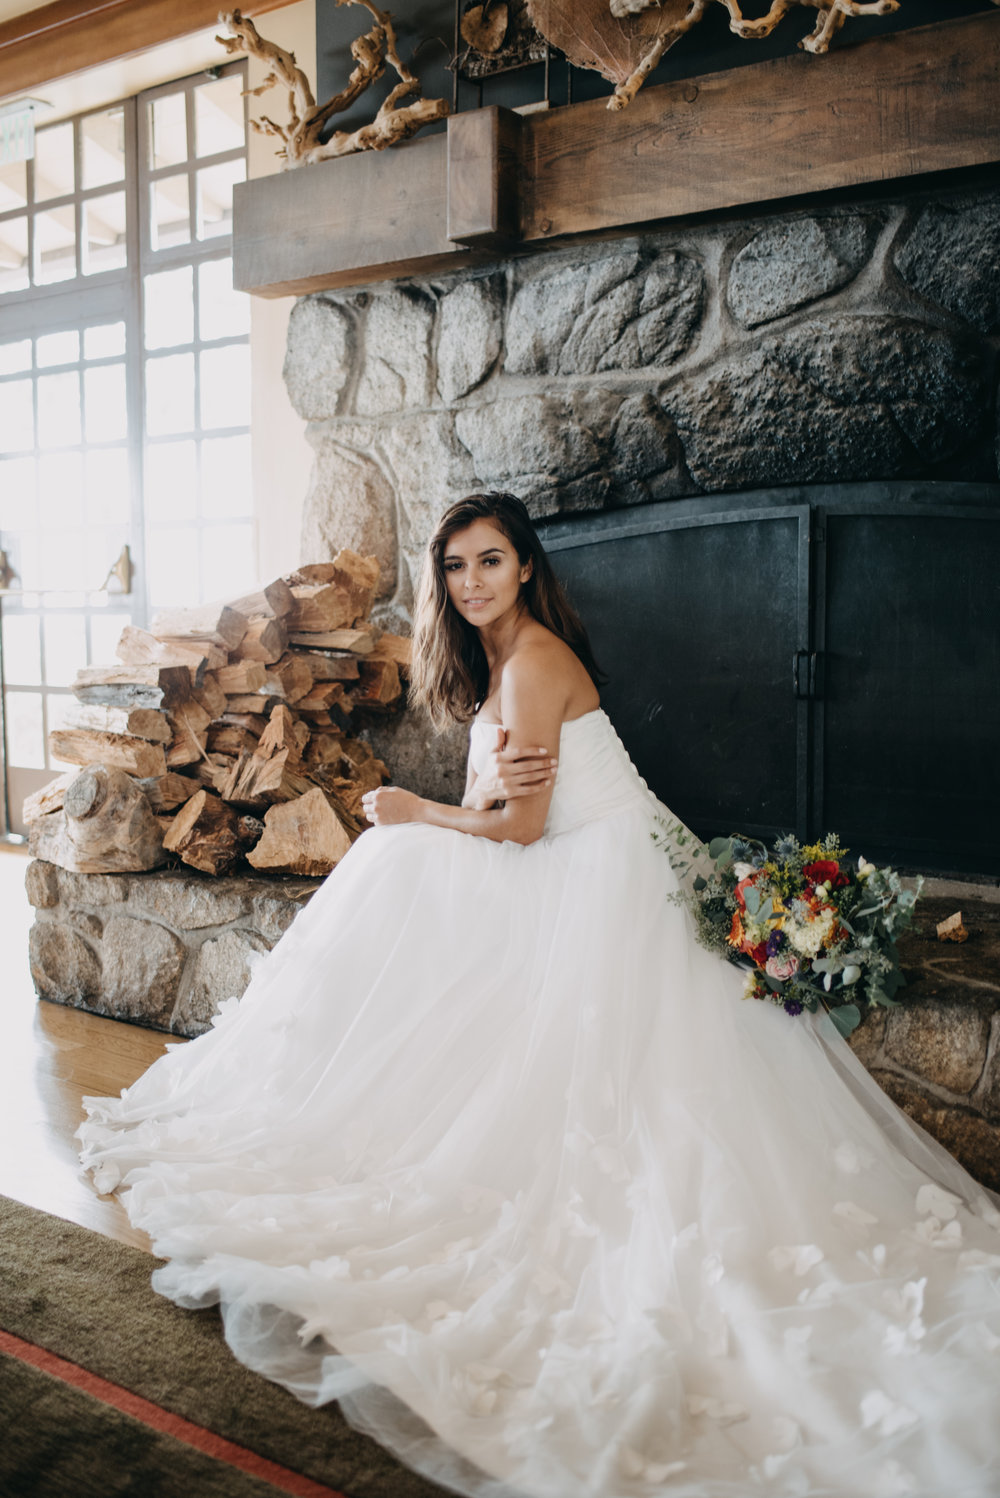 gorgeous wedding dress bridal photoshoot, simple modern wedding dress for under $1000